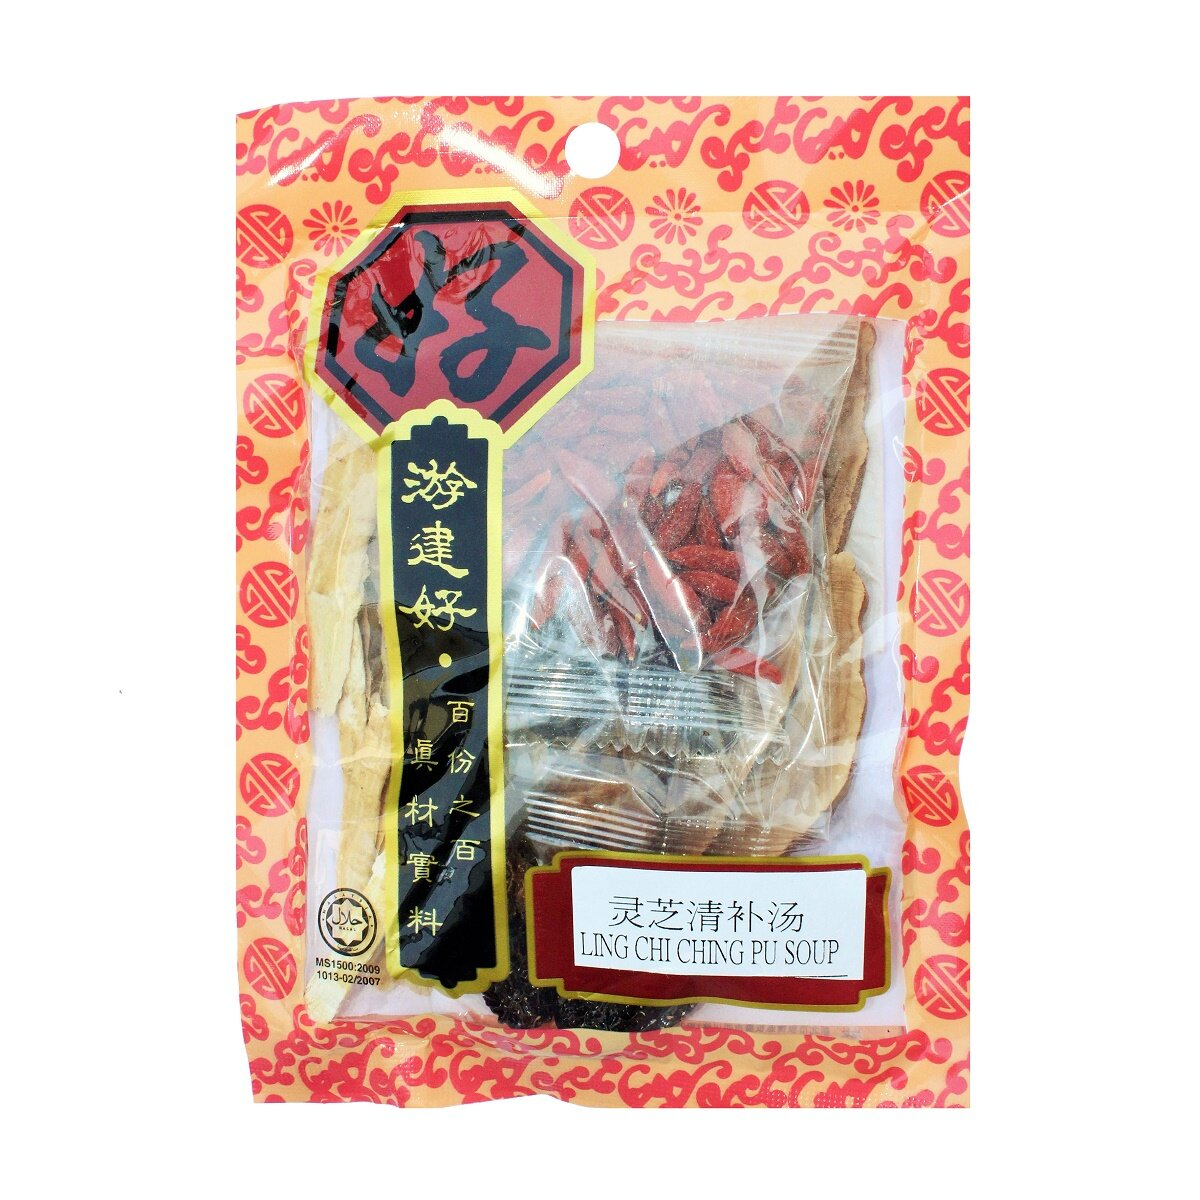 YCH Ling Chi Ching Pu Chicken Herbal Soup 65g (2 years shelf life) herbs pack